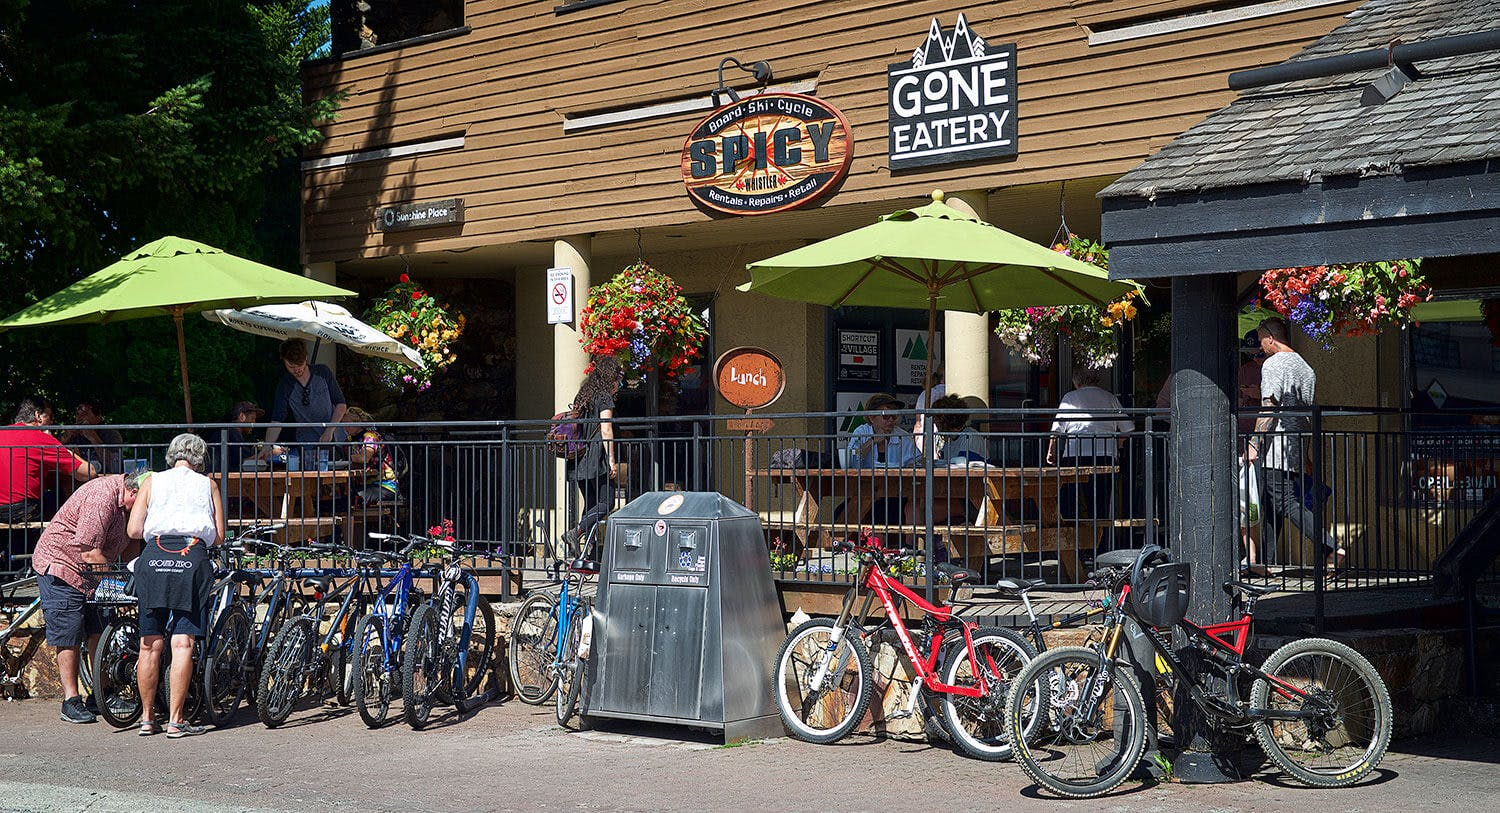 Gone eatery in Whistler village